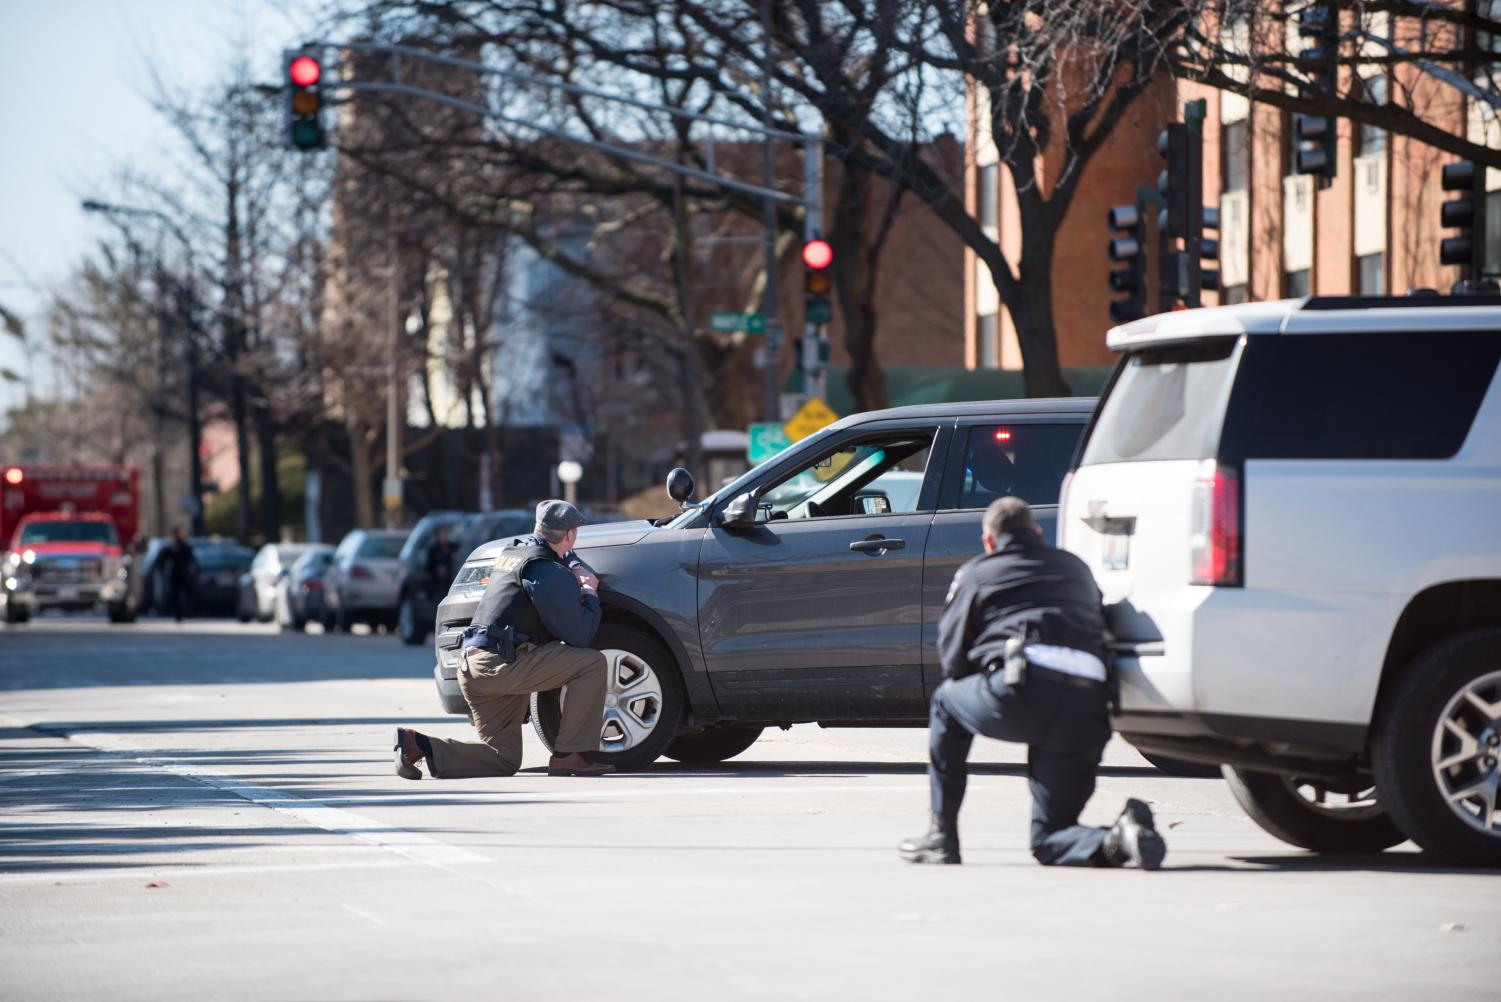 Officers respond to the scene outside Engelhart Hall at Emerson Street and Maple Avenue in March. EPD recently concluded the investigation into the swatting incident, EPD Cmdr. Ryan Glew said Tuesday.